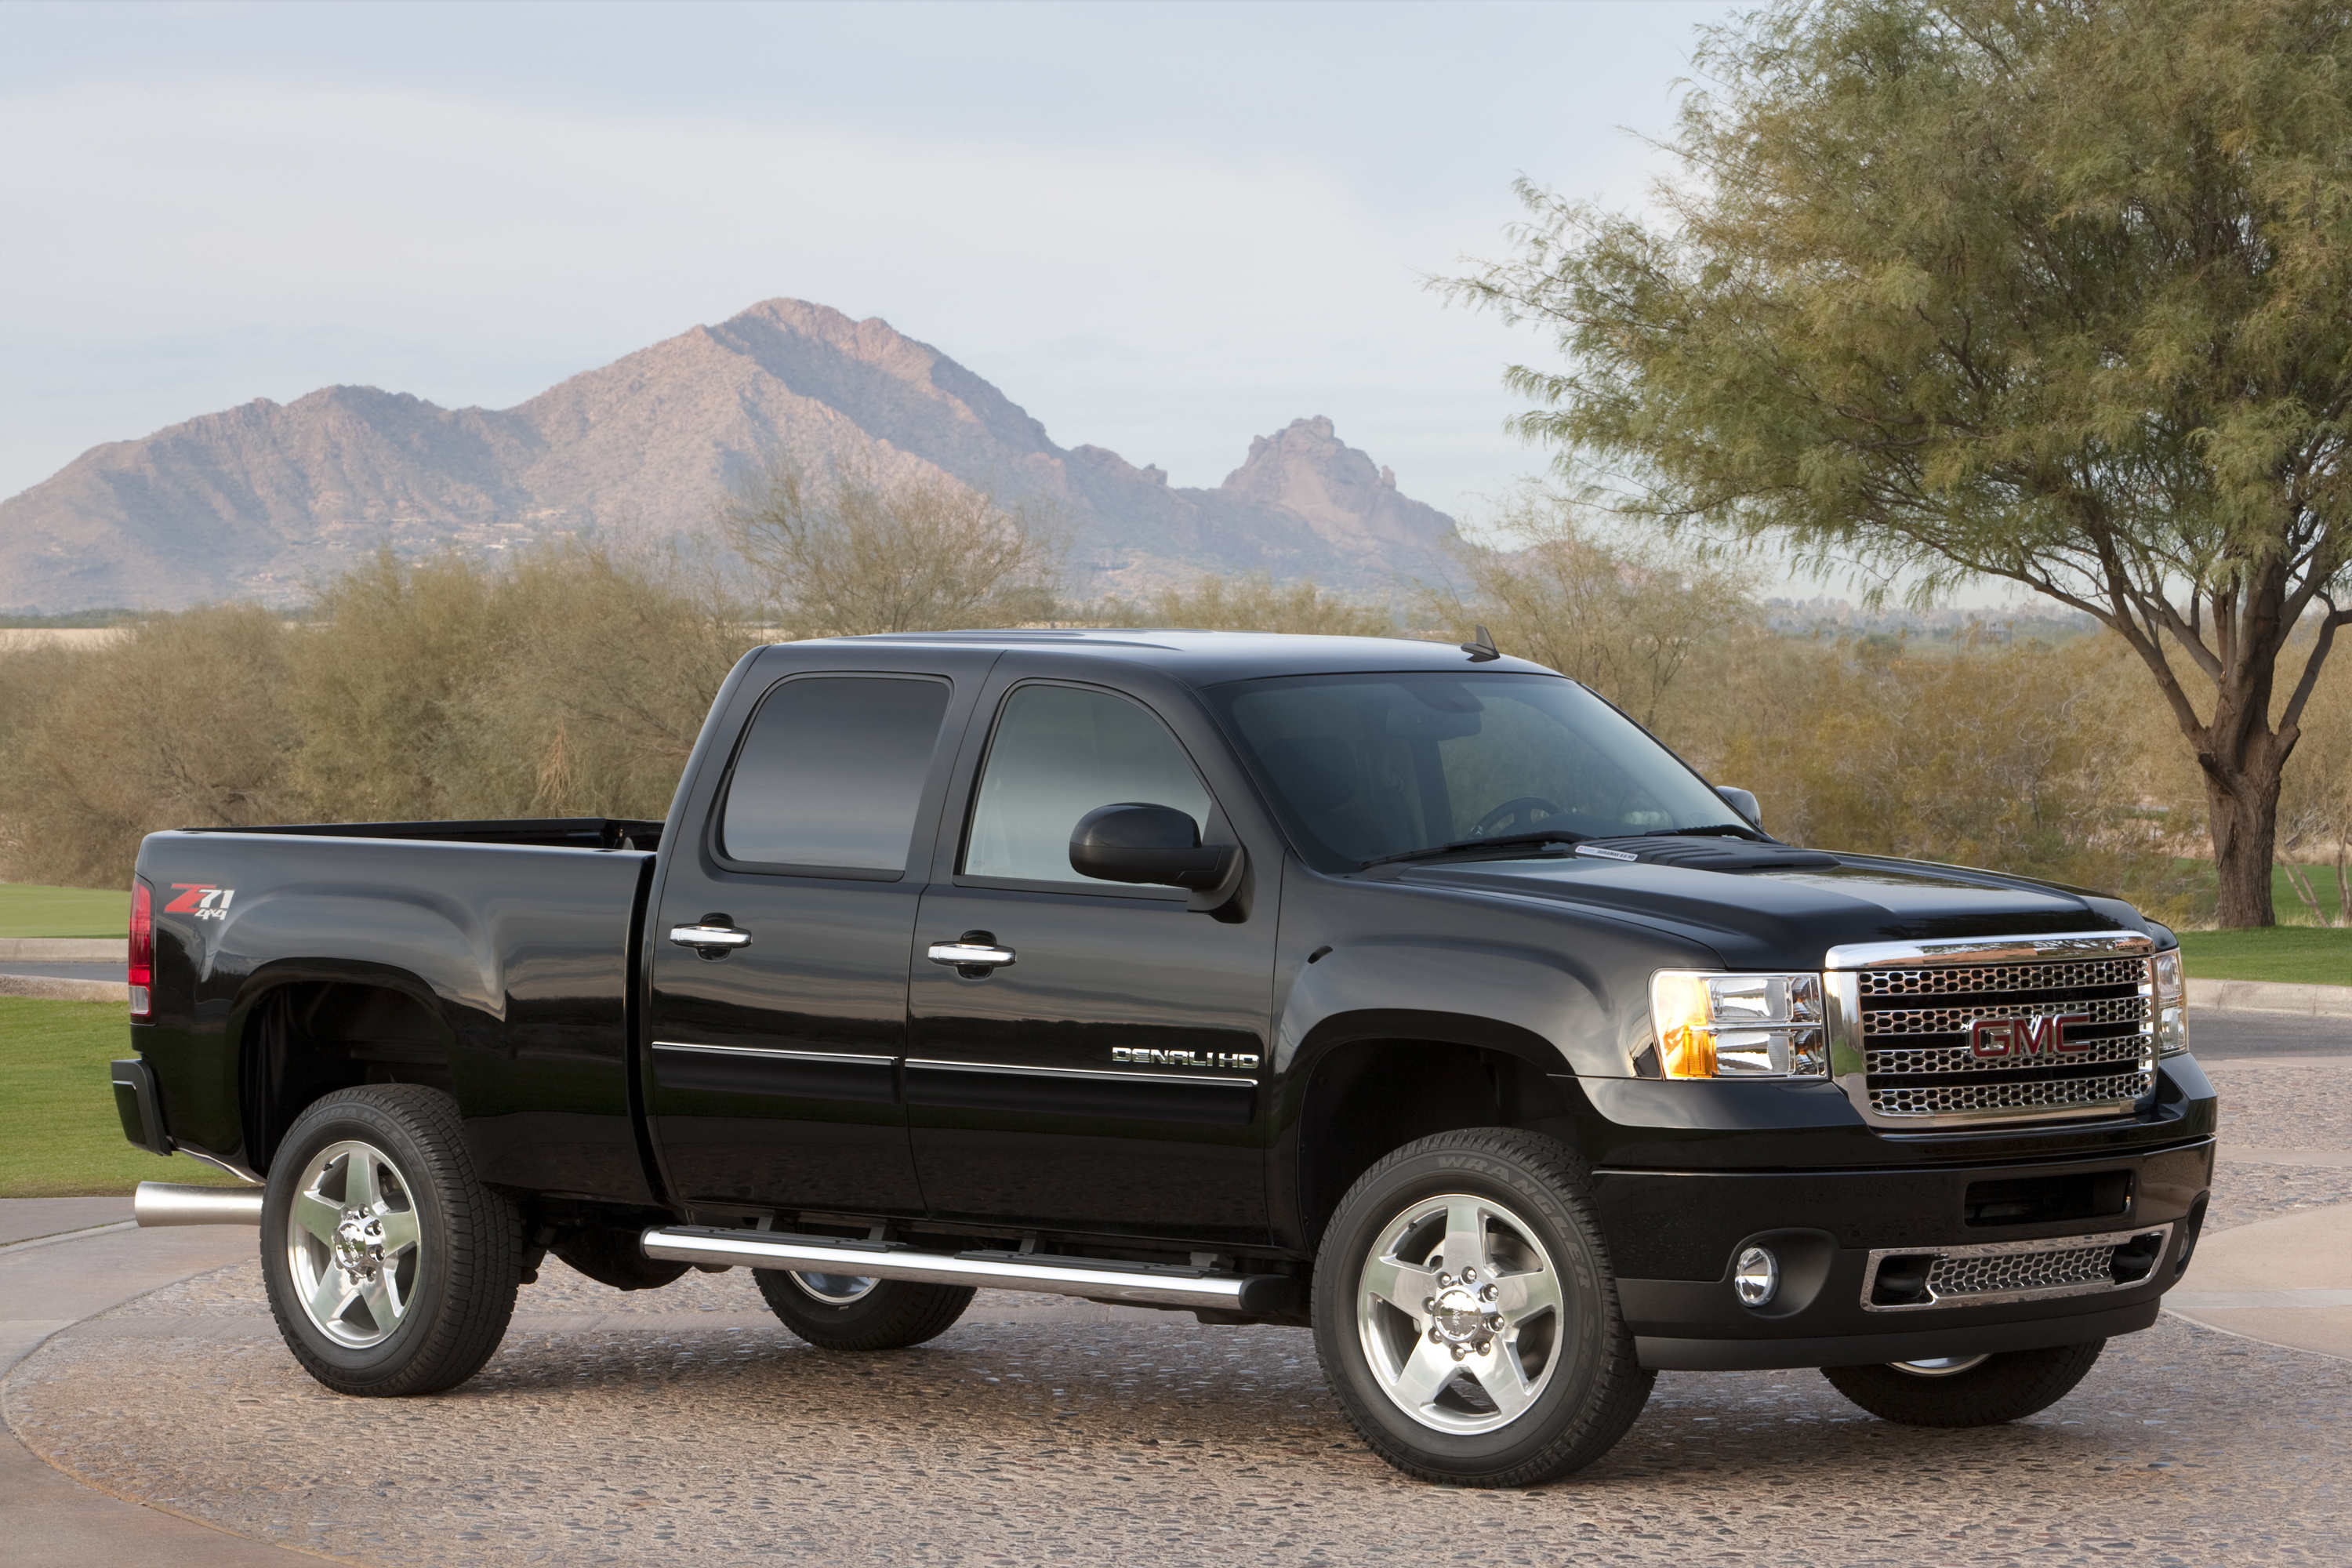 tag blog mills a front motors gmc by with skidmarx fuel efficiency sierra side